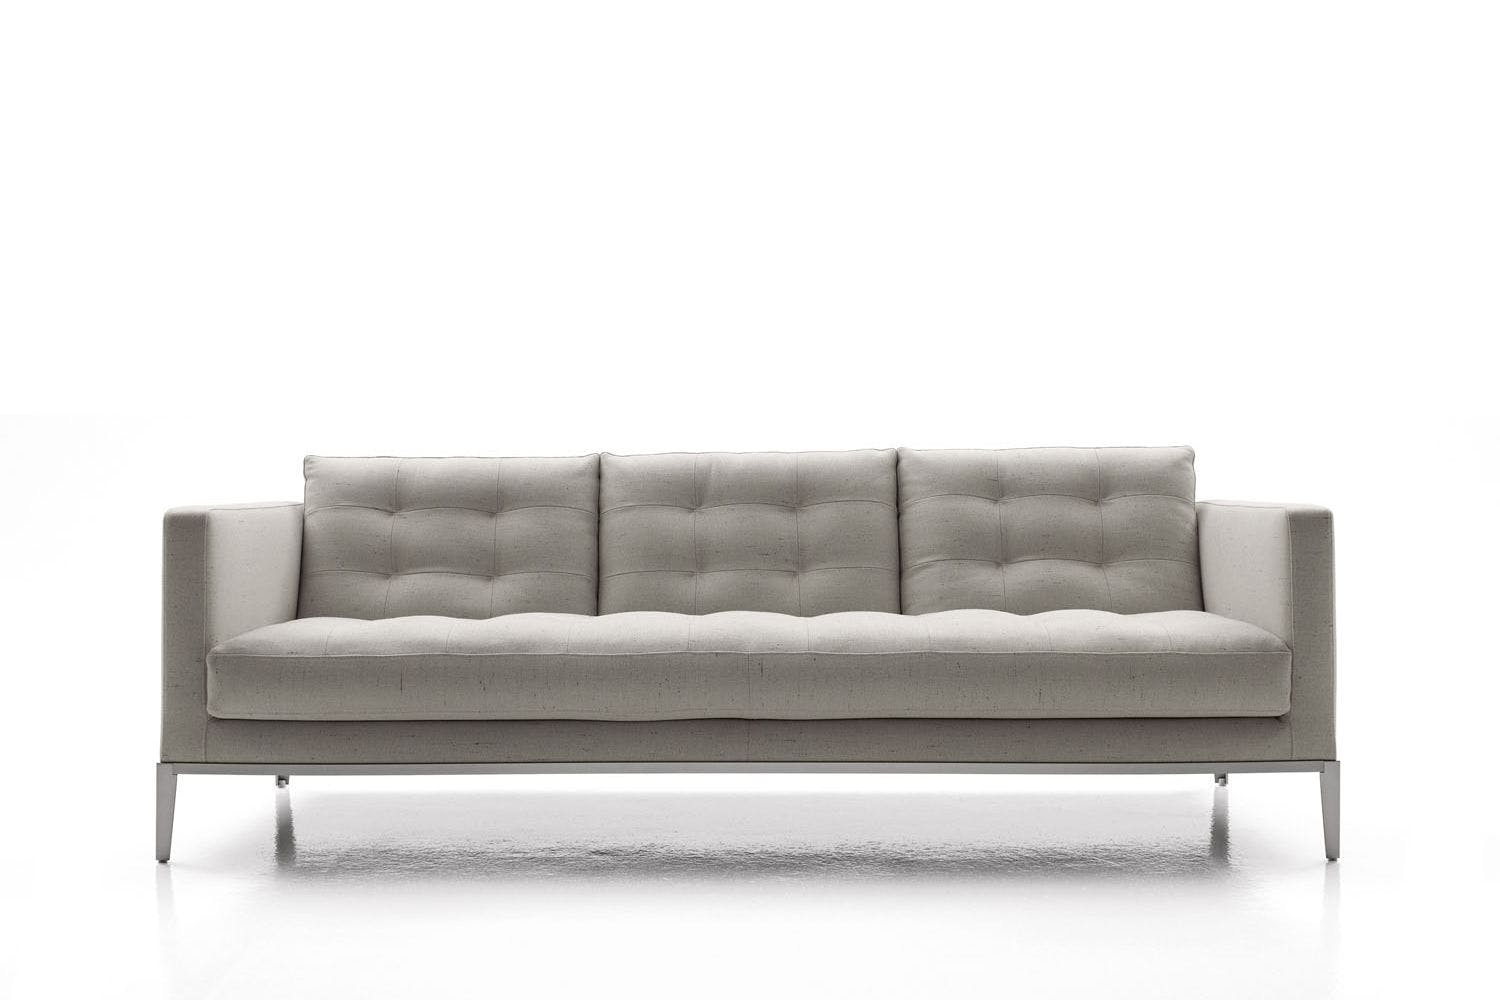 Ac Lounge Sofa By Antonio Citterio For B B Italia Project Space Furniture